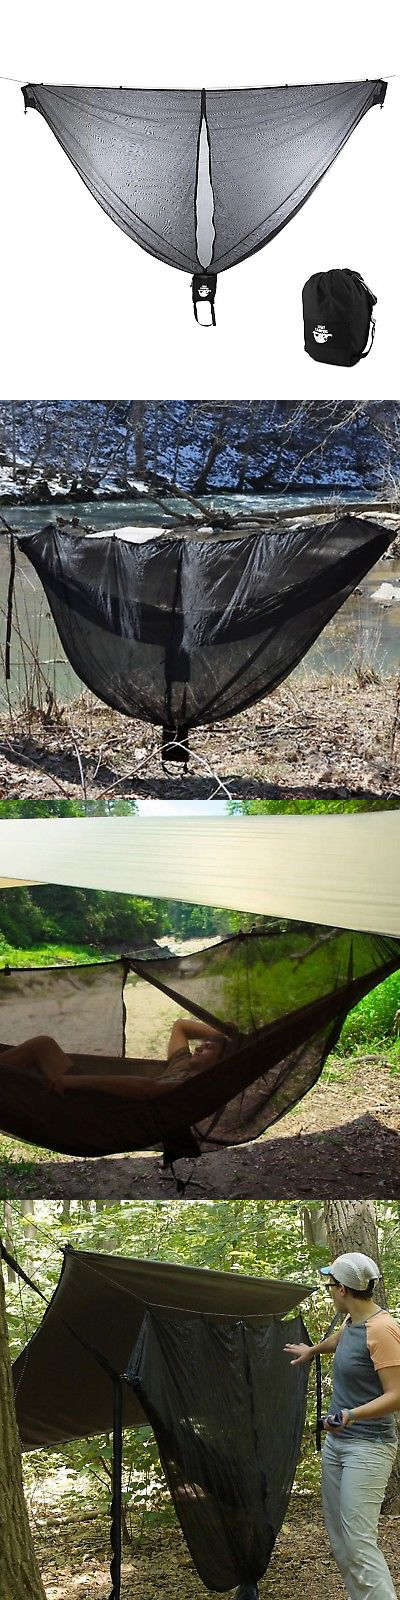 hammock inspiration best foot of design interest pinterest articles beautiful awesome on images